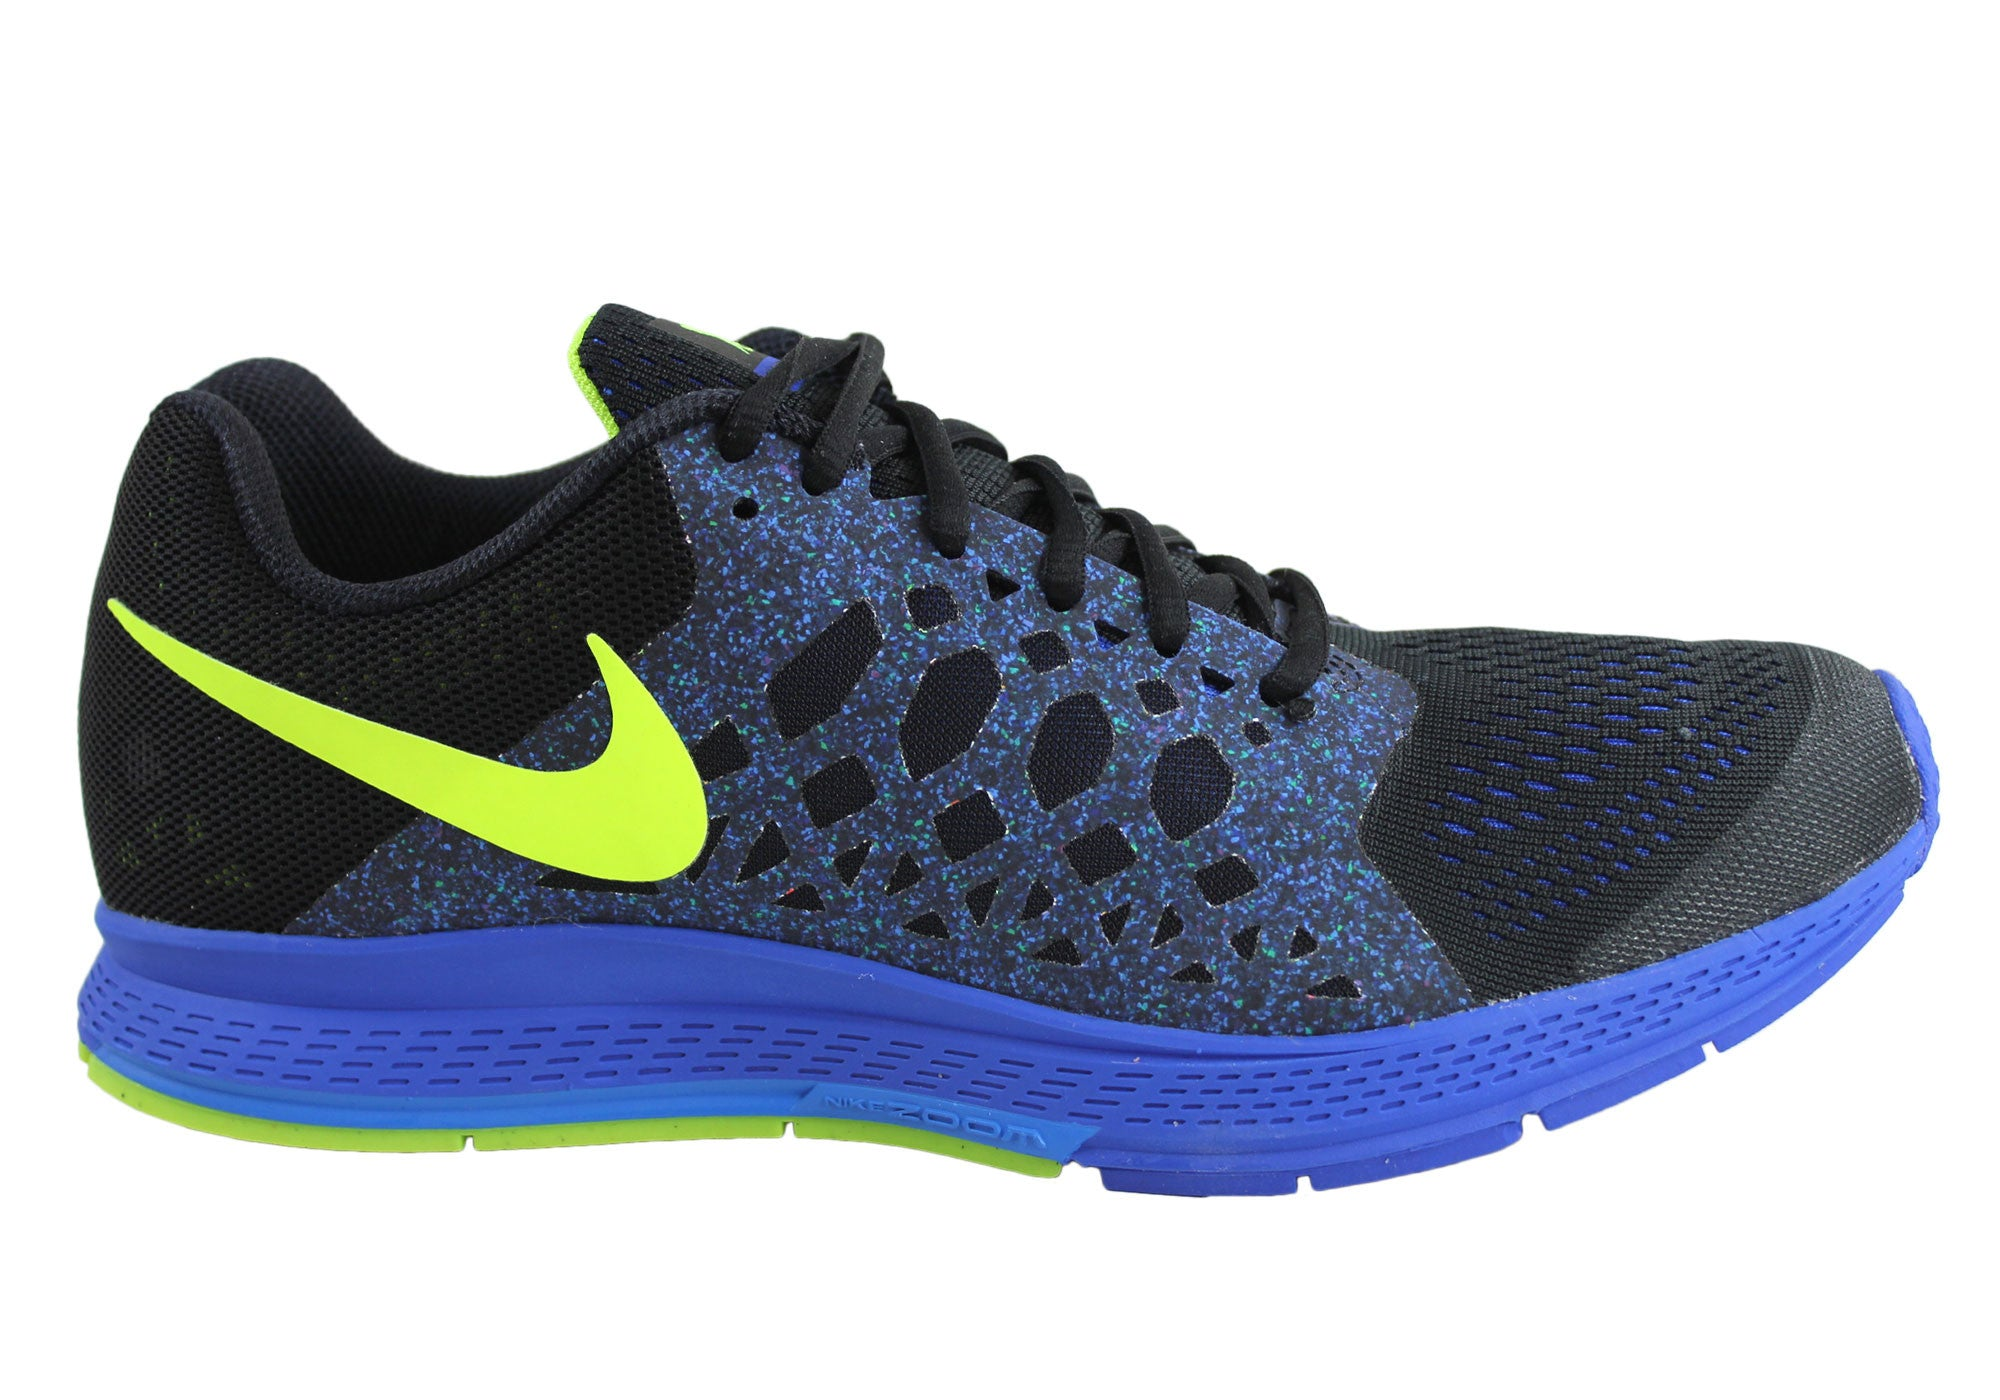 b91dcf9662f5 Nike Air Zoom Pegasus 31 Mens Running Sport Shoes